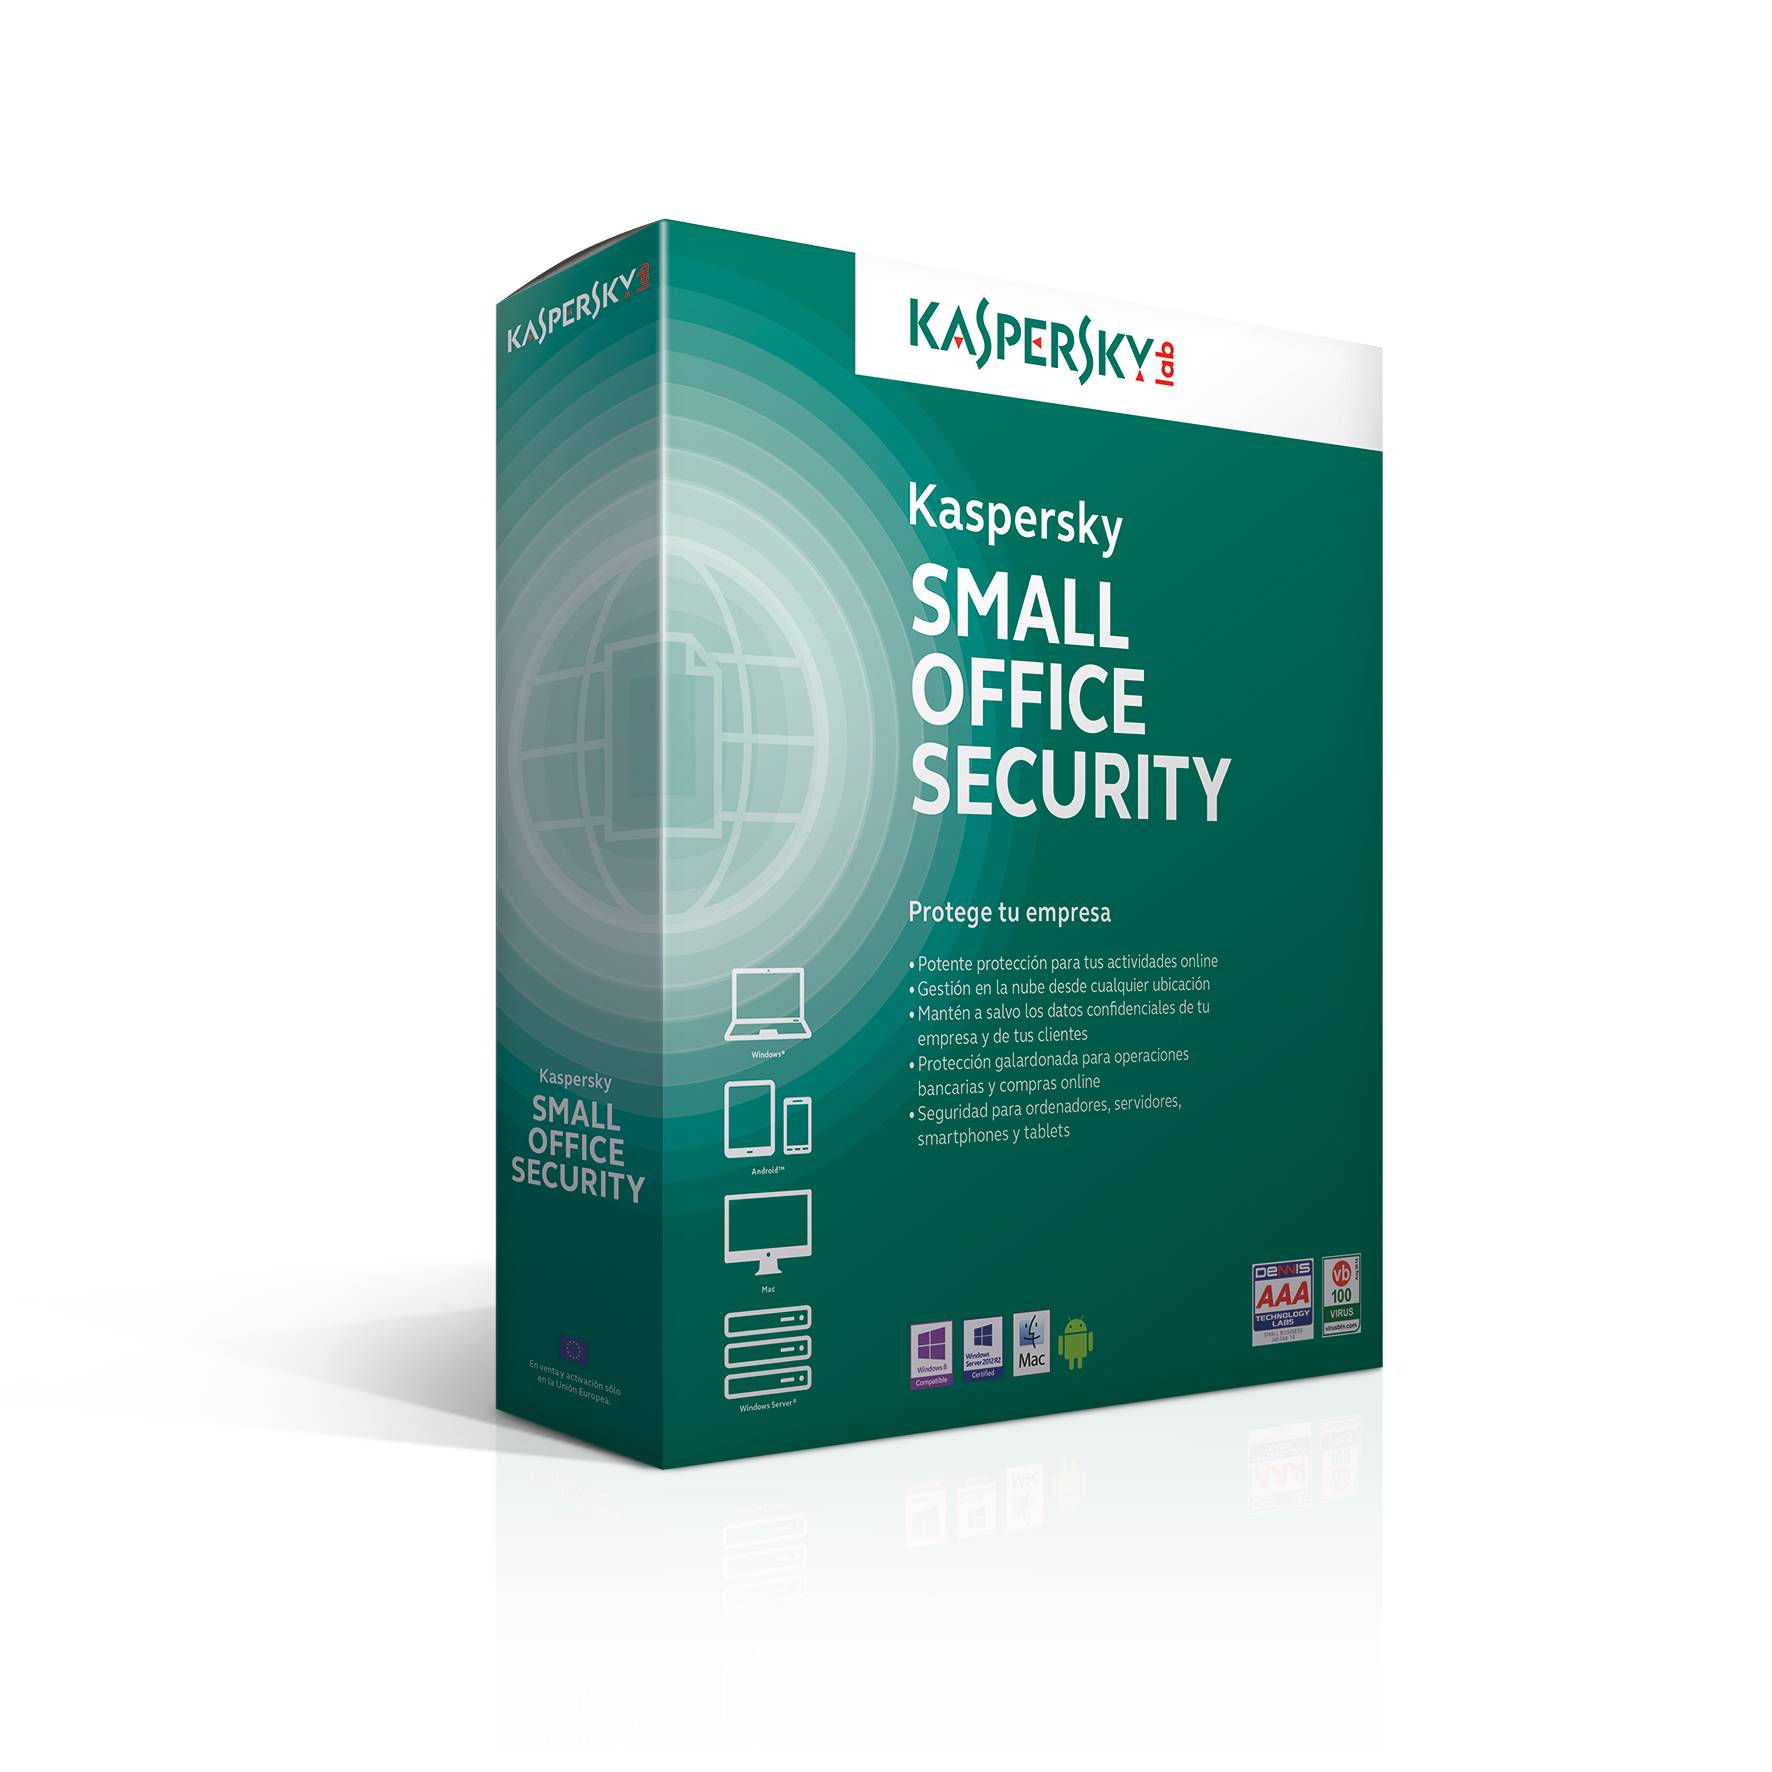 Ver KASPERSKY SMALL OFFICE SECURITY 40 10 Usuarios